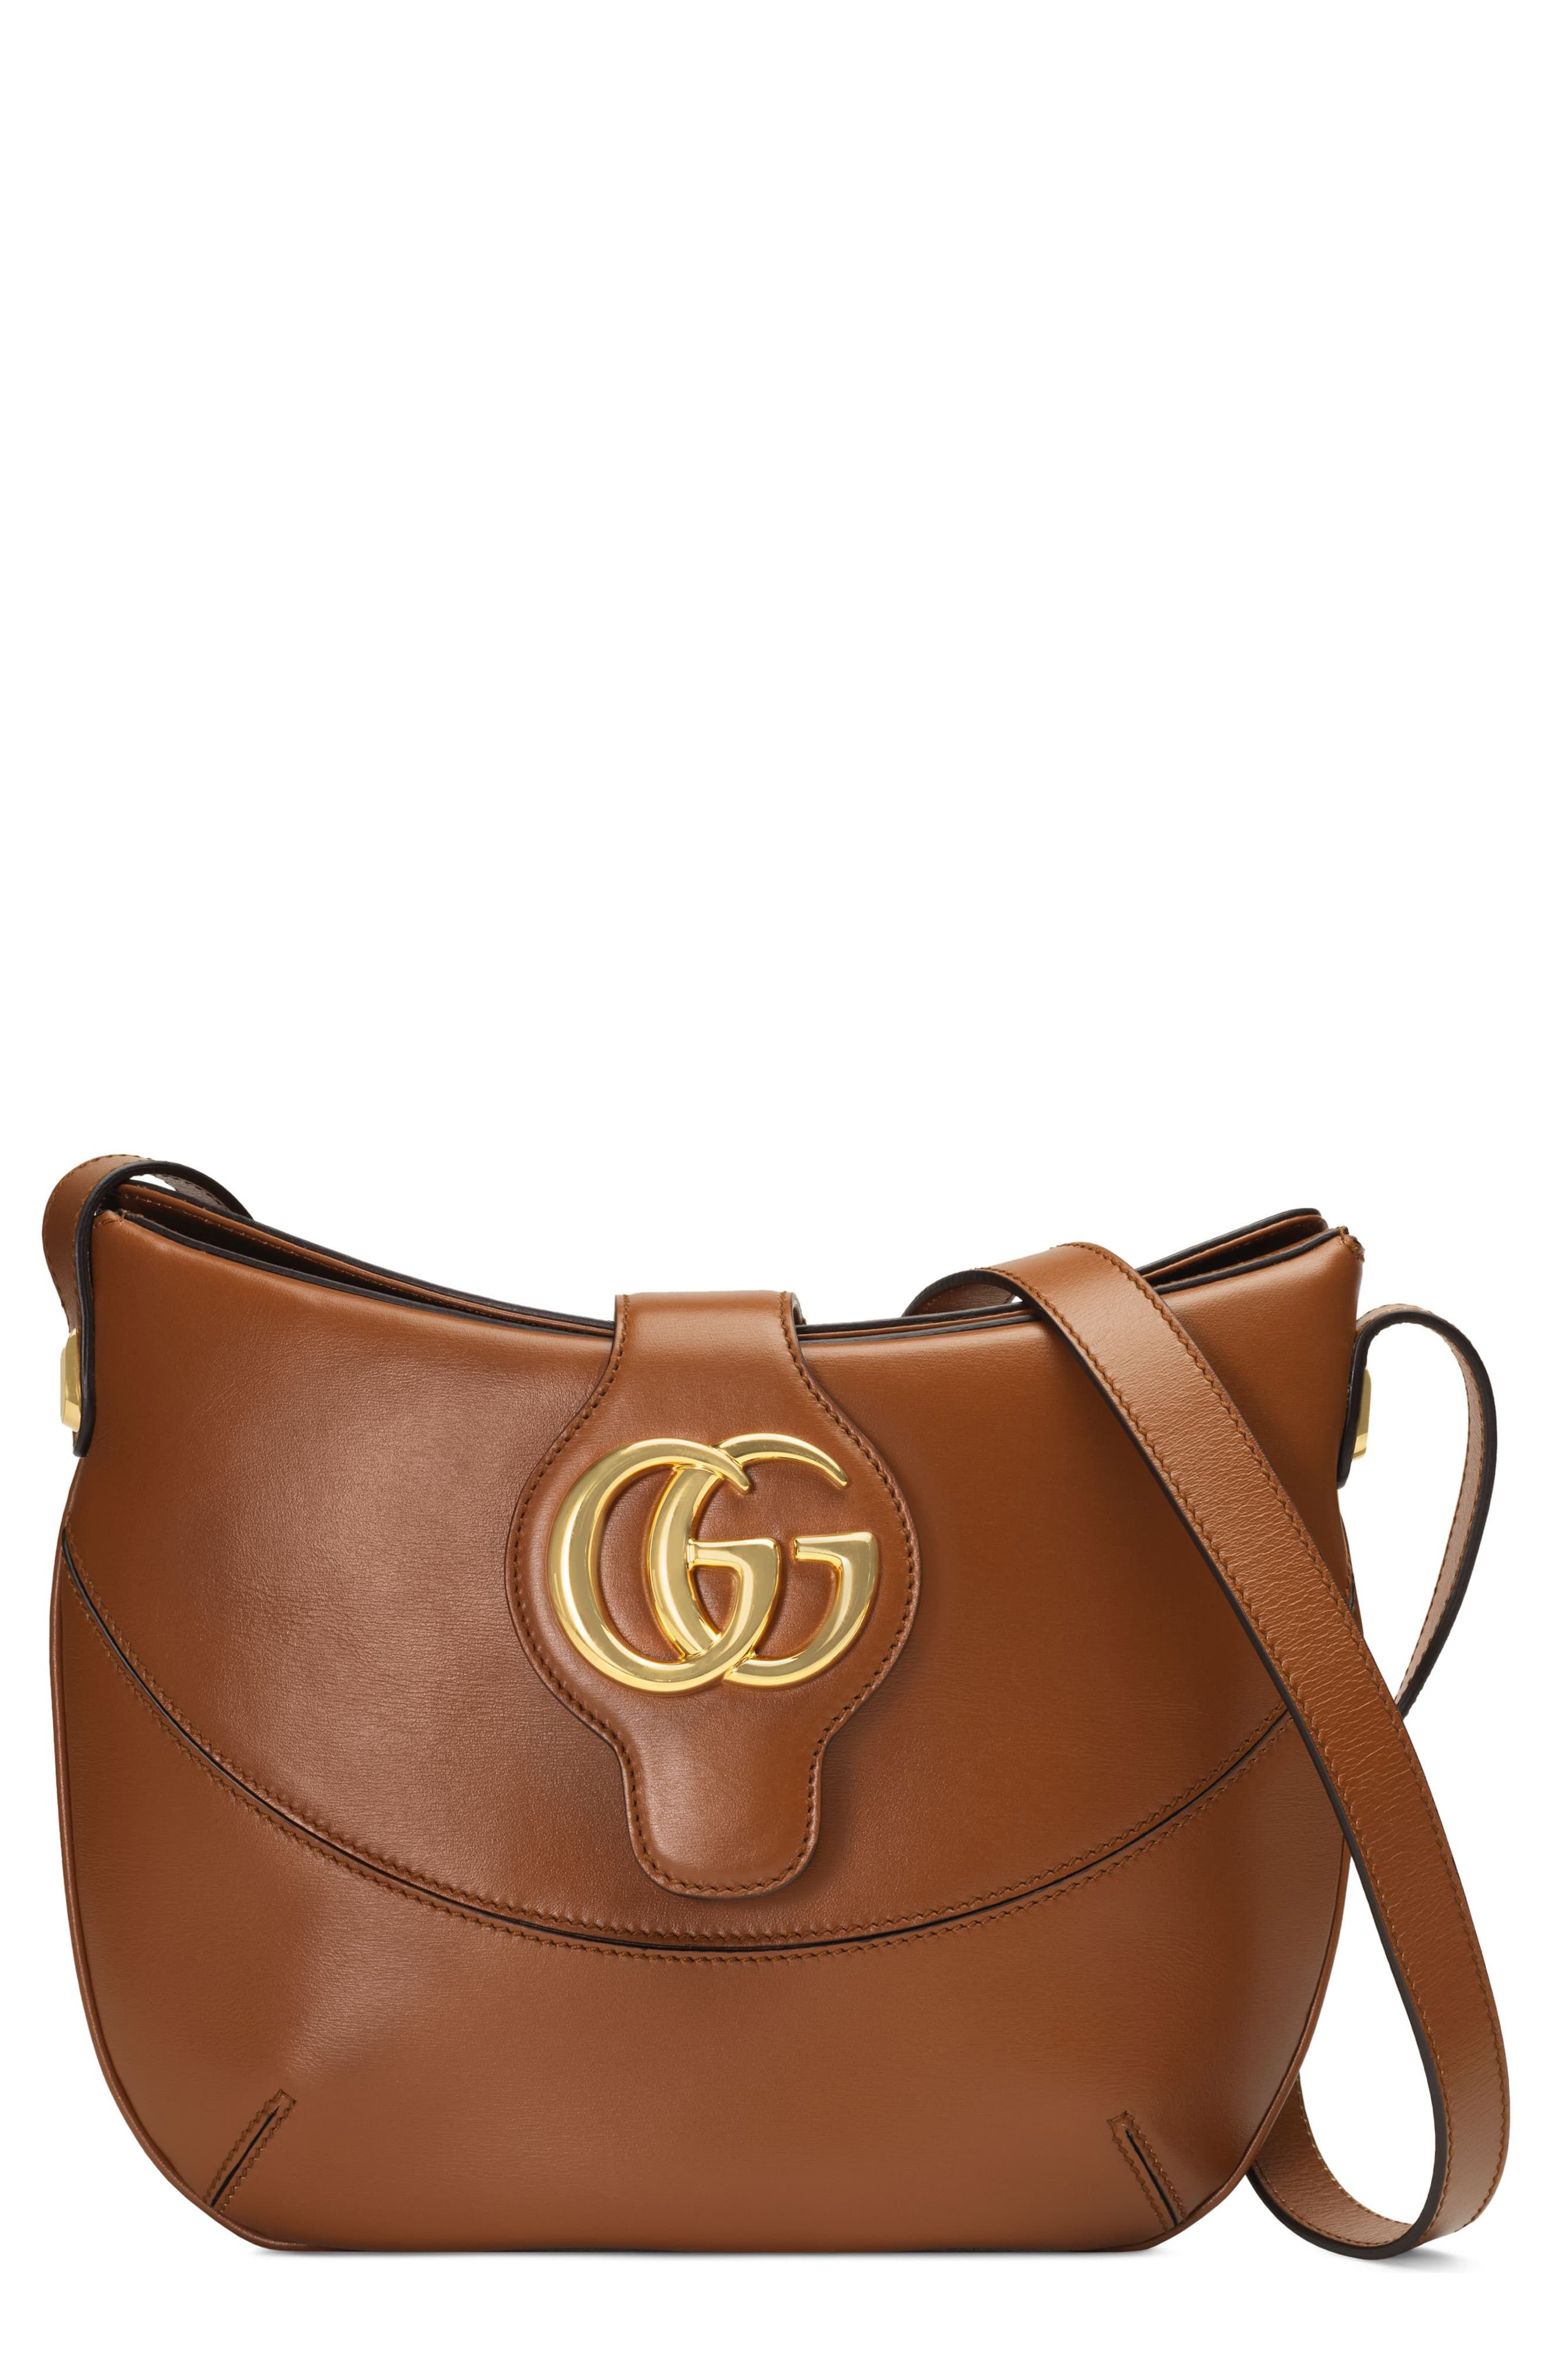 a6f7491fc Gucci Medium Arli Leather Shoulder Bag - Brown in 2019 | Products ...